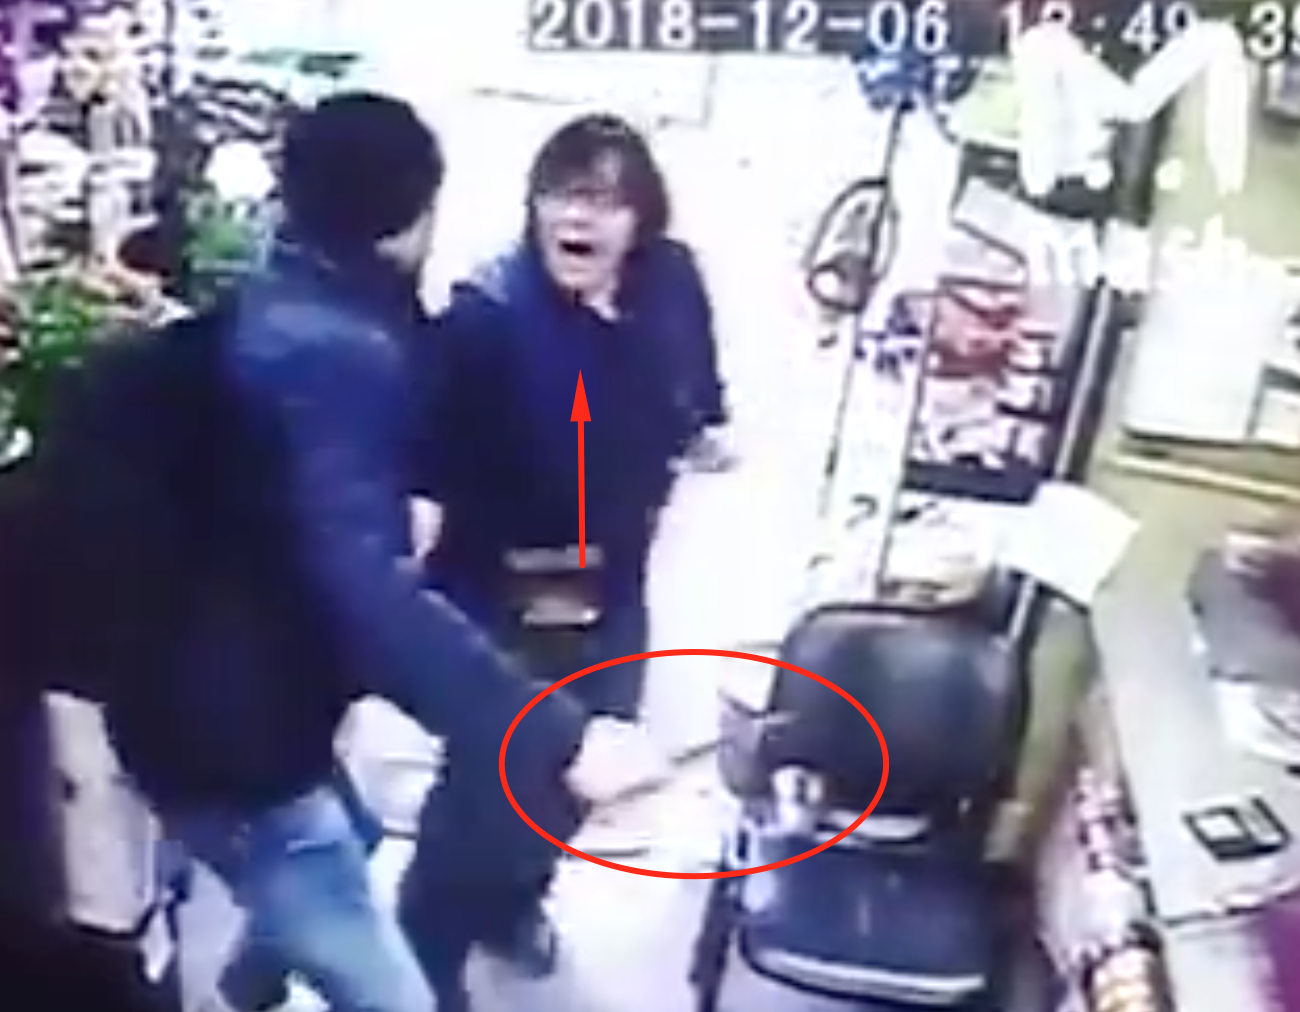 Poor Guy is Robbing Store Just He Wants to Go To Prison Because Desperate in Moscow